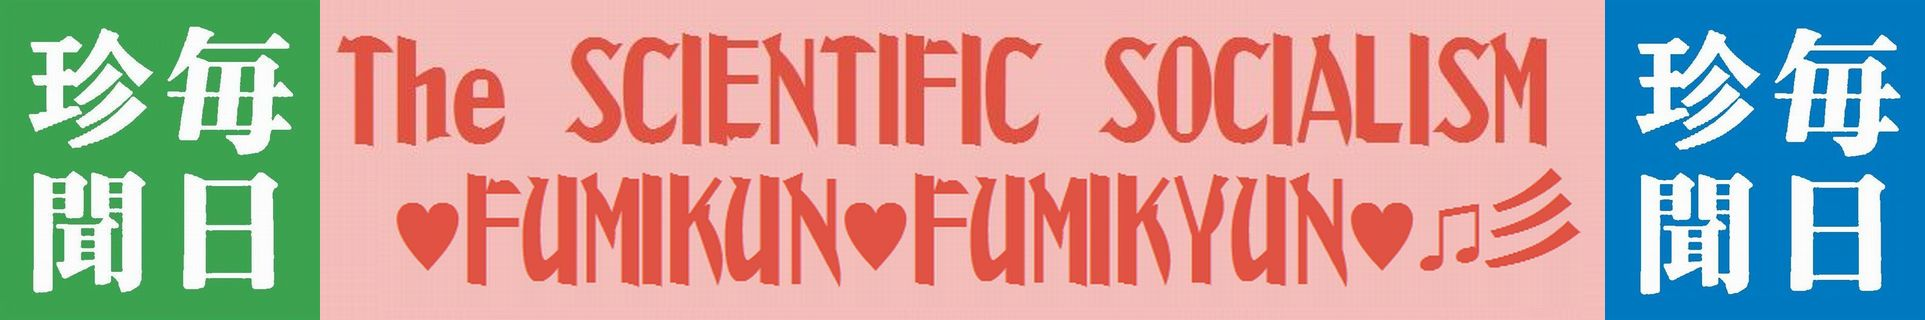 The SCIENTIFIC SOCIALISM❤FUMIKUN❤FUMIKYUN❤♫彡™